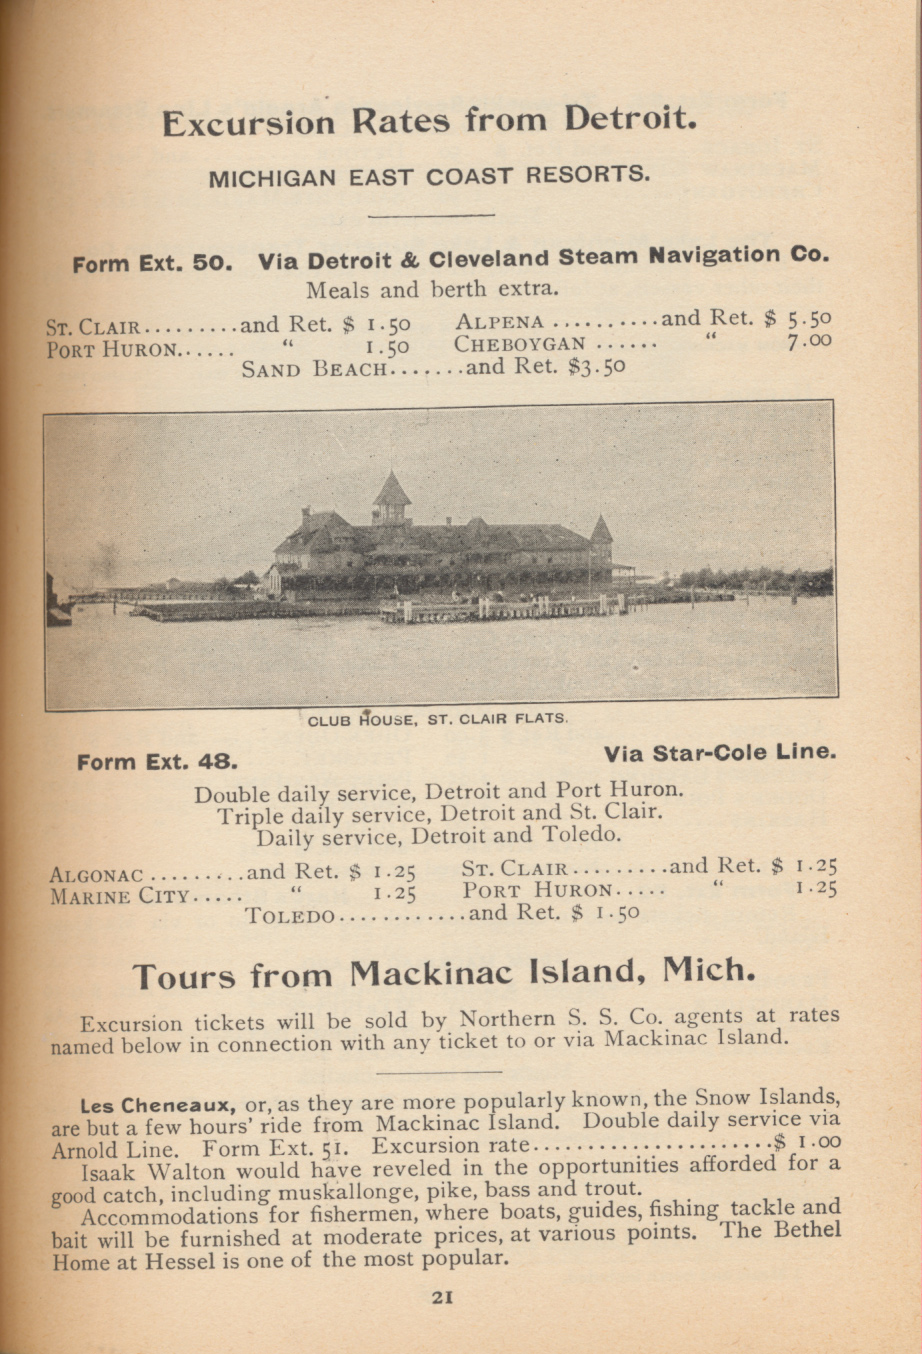 Club House, St. Clair Flats and information about excursion rates from Detroit, Michigan and Mackinac Island, Michigan